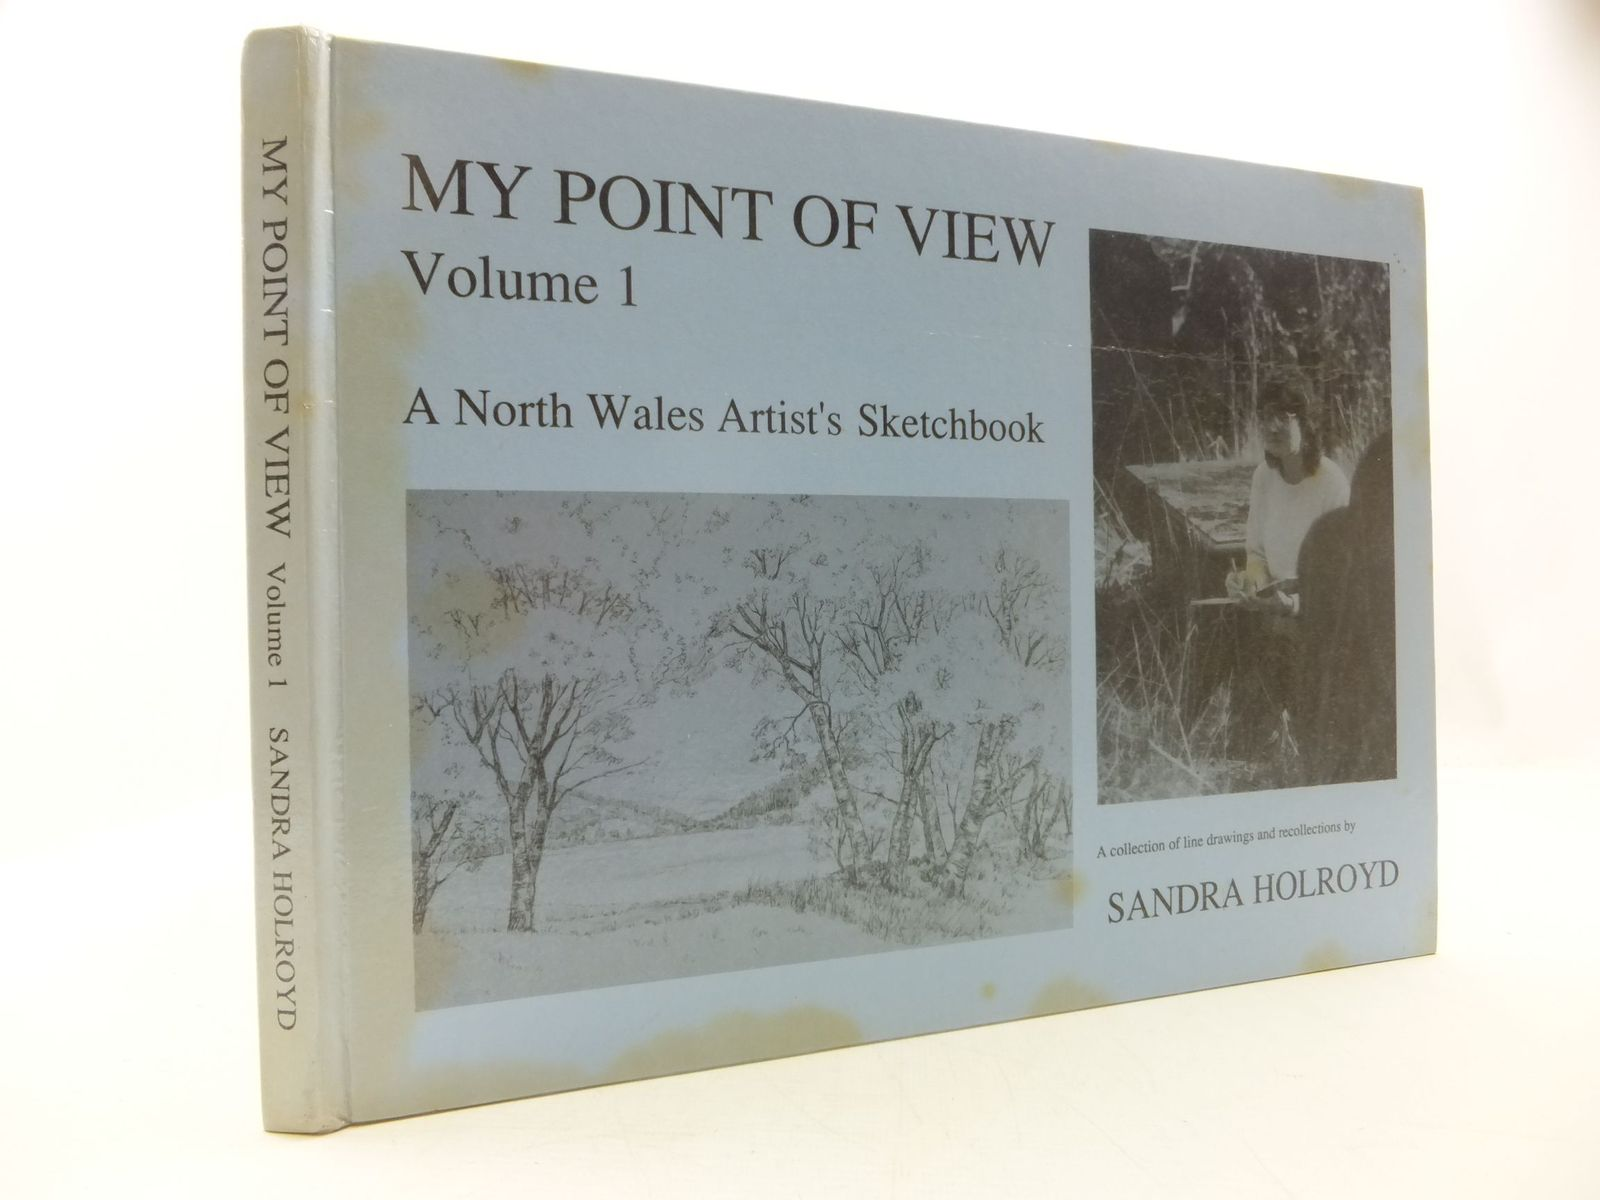 Photo of MY POINT OF VIEW VOLUME 1 A NORTH WALES ARTIST'S SKETCHBOOK